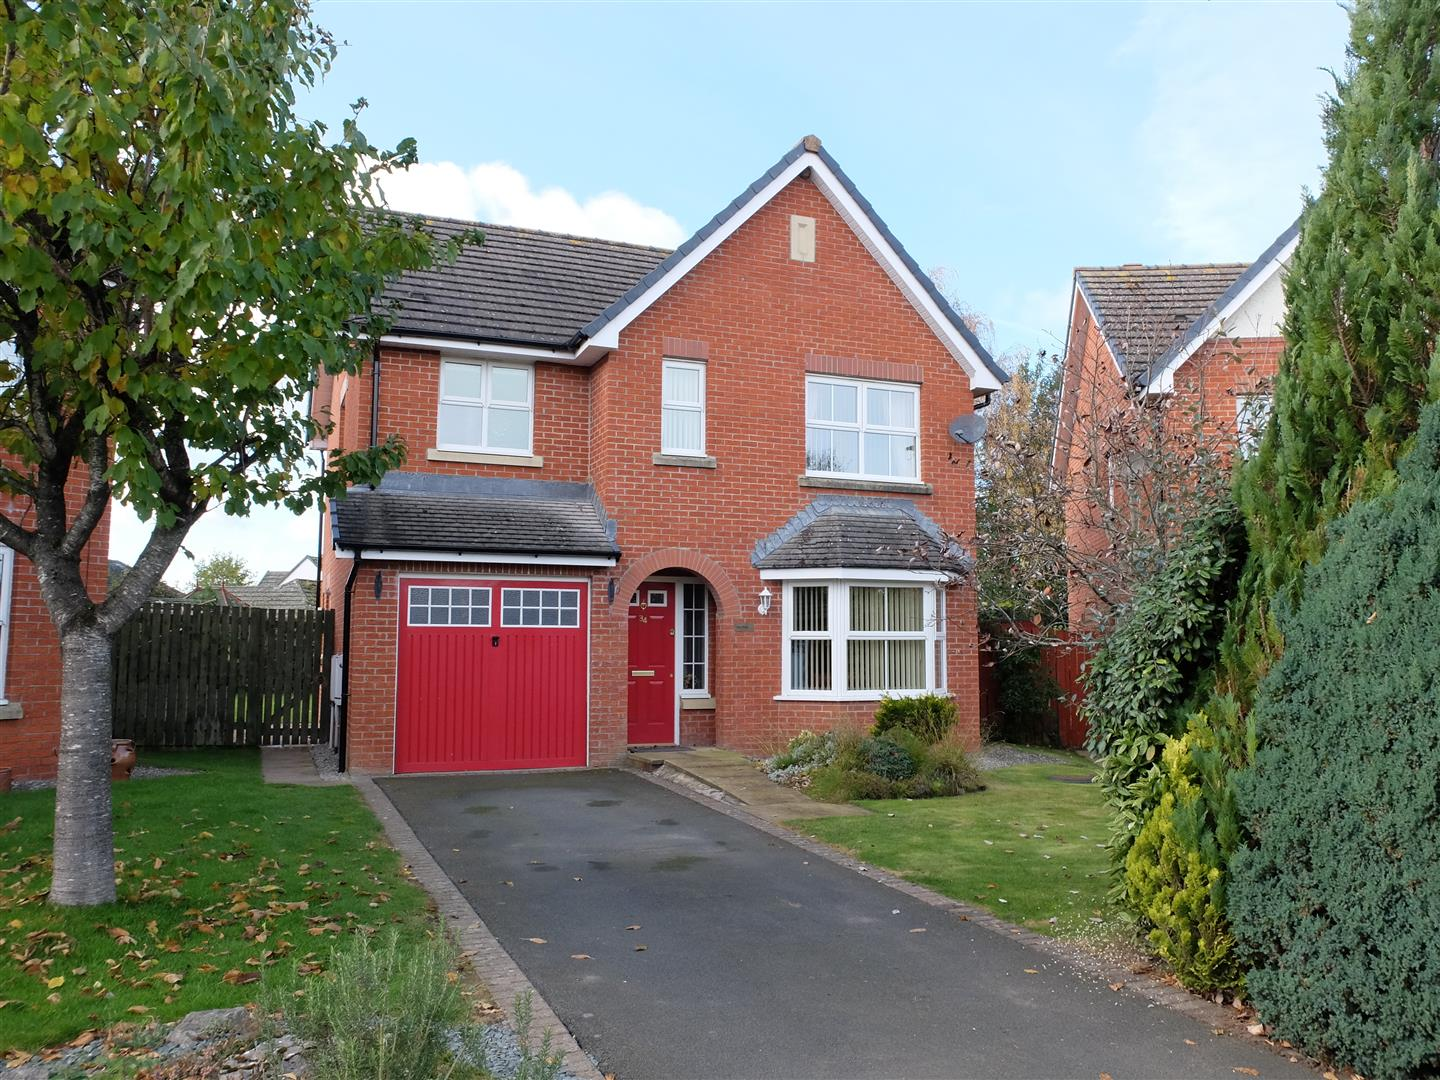 34 The Paddocks Carlisle 4 Bedrooms House - Detached For Sale